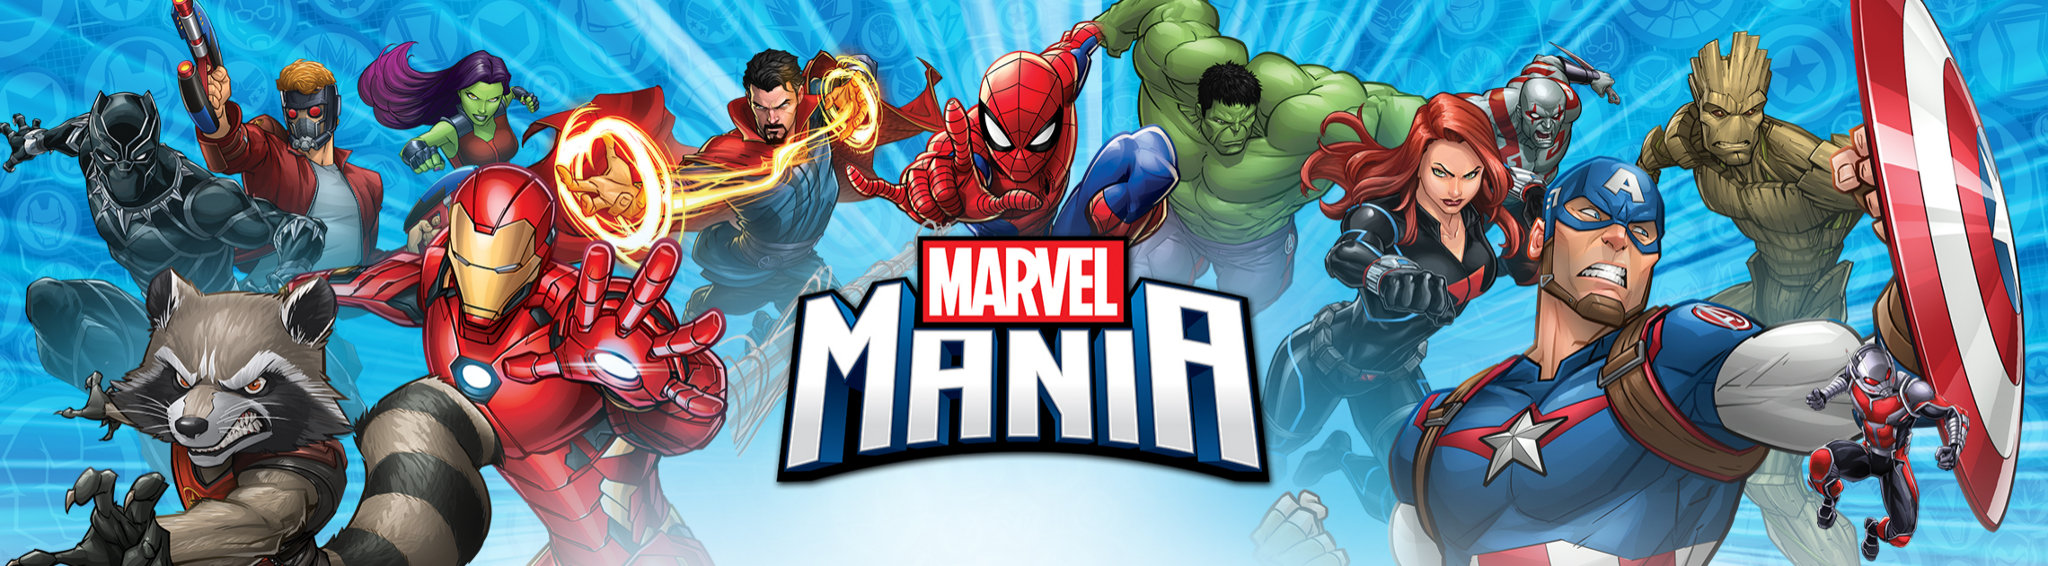 Marvel banner with Iron Man, Hulk, Spider-Man, Captain America, Doctor Strange and others